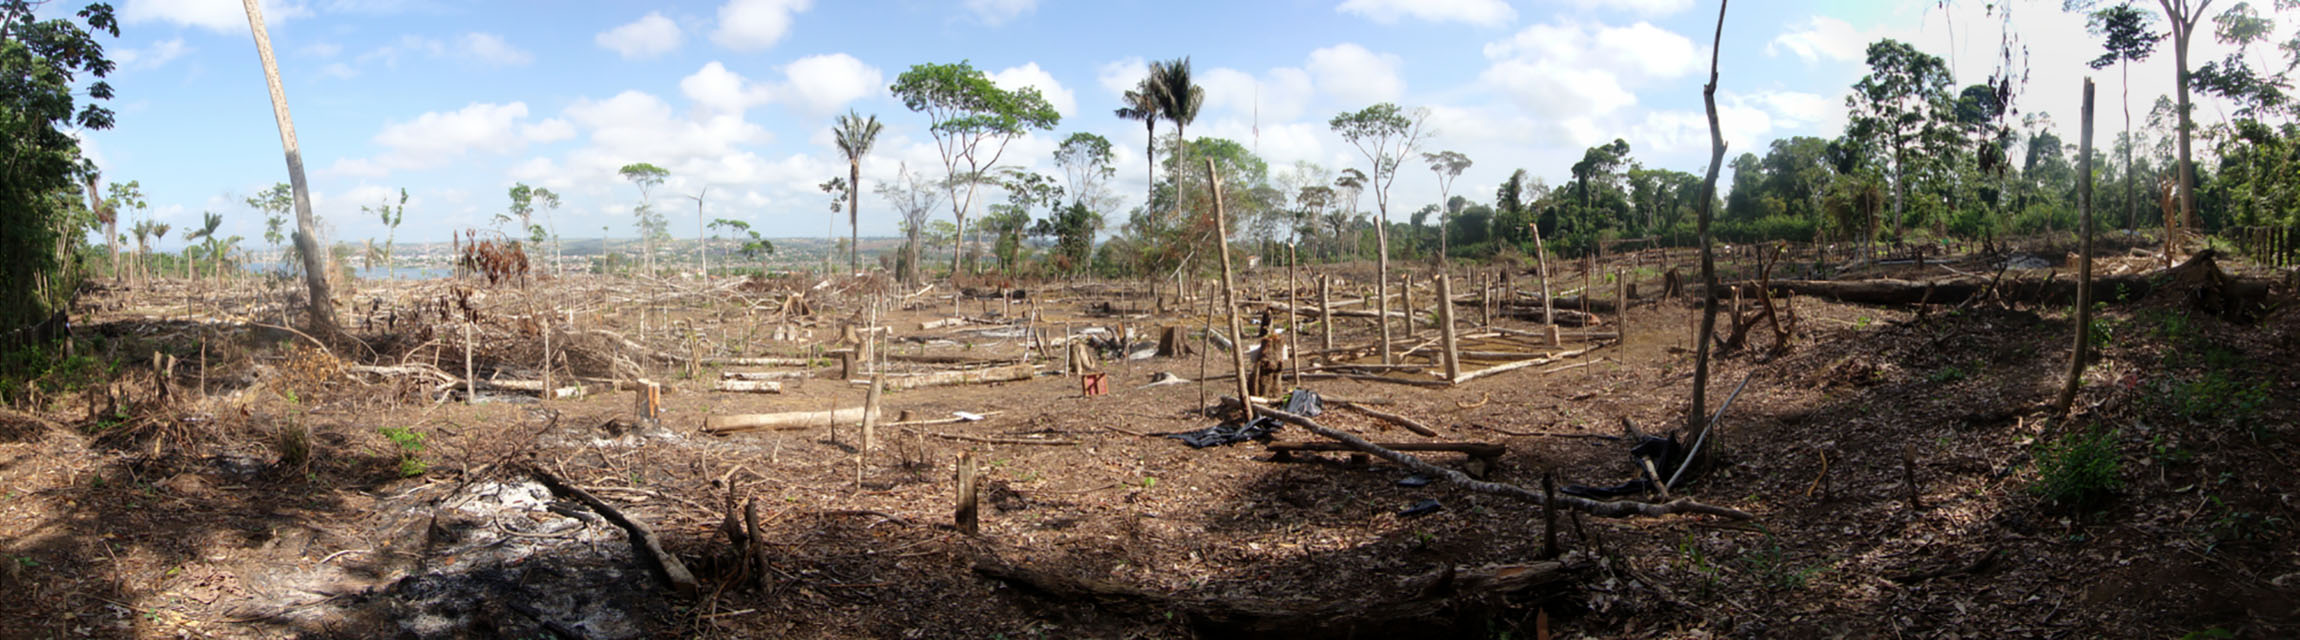 Area of illegal deforestation-72 ppi